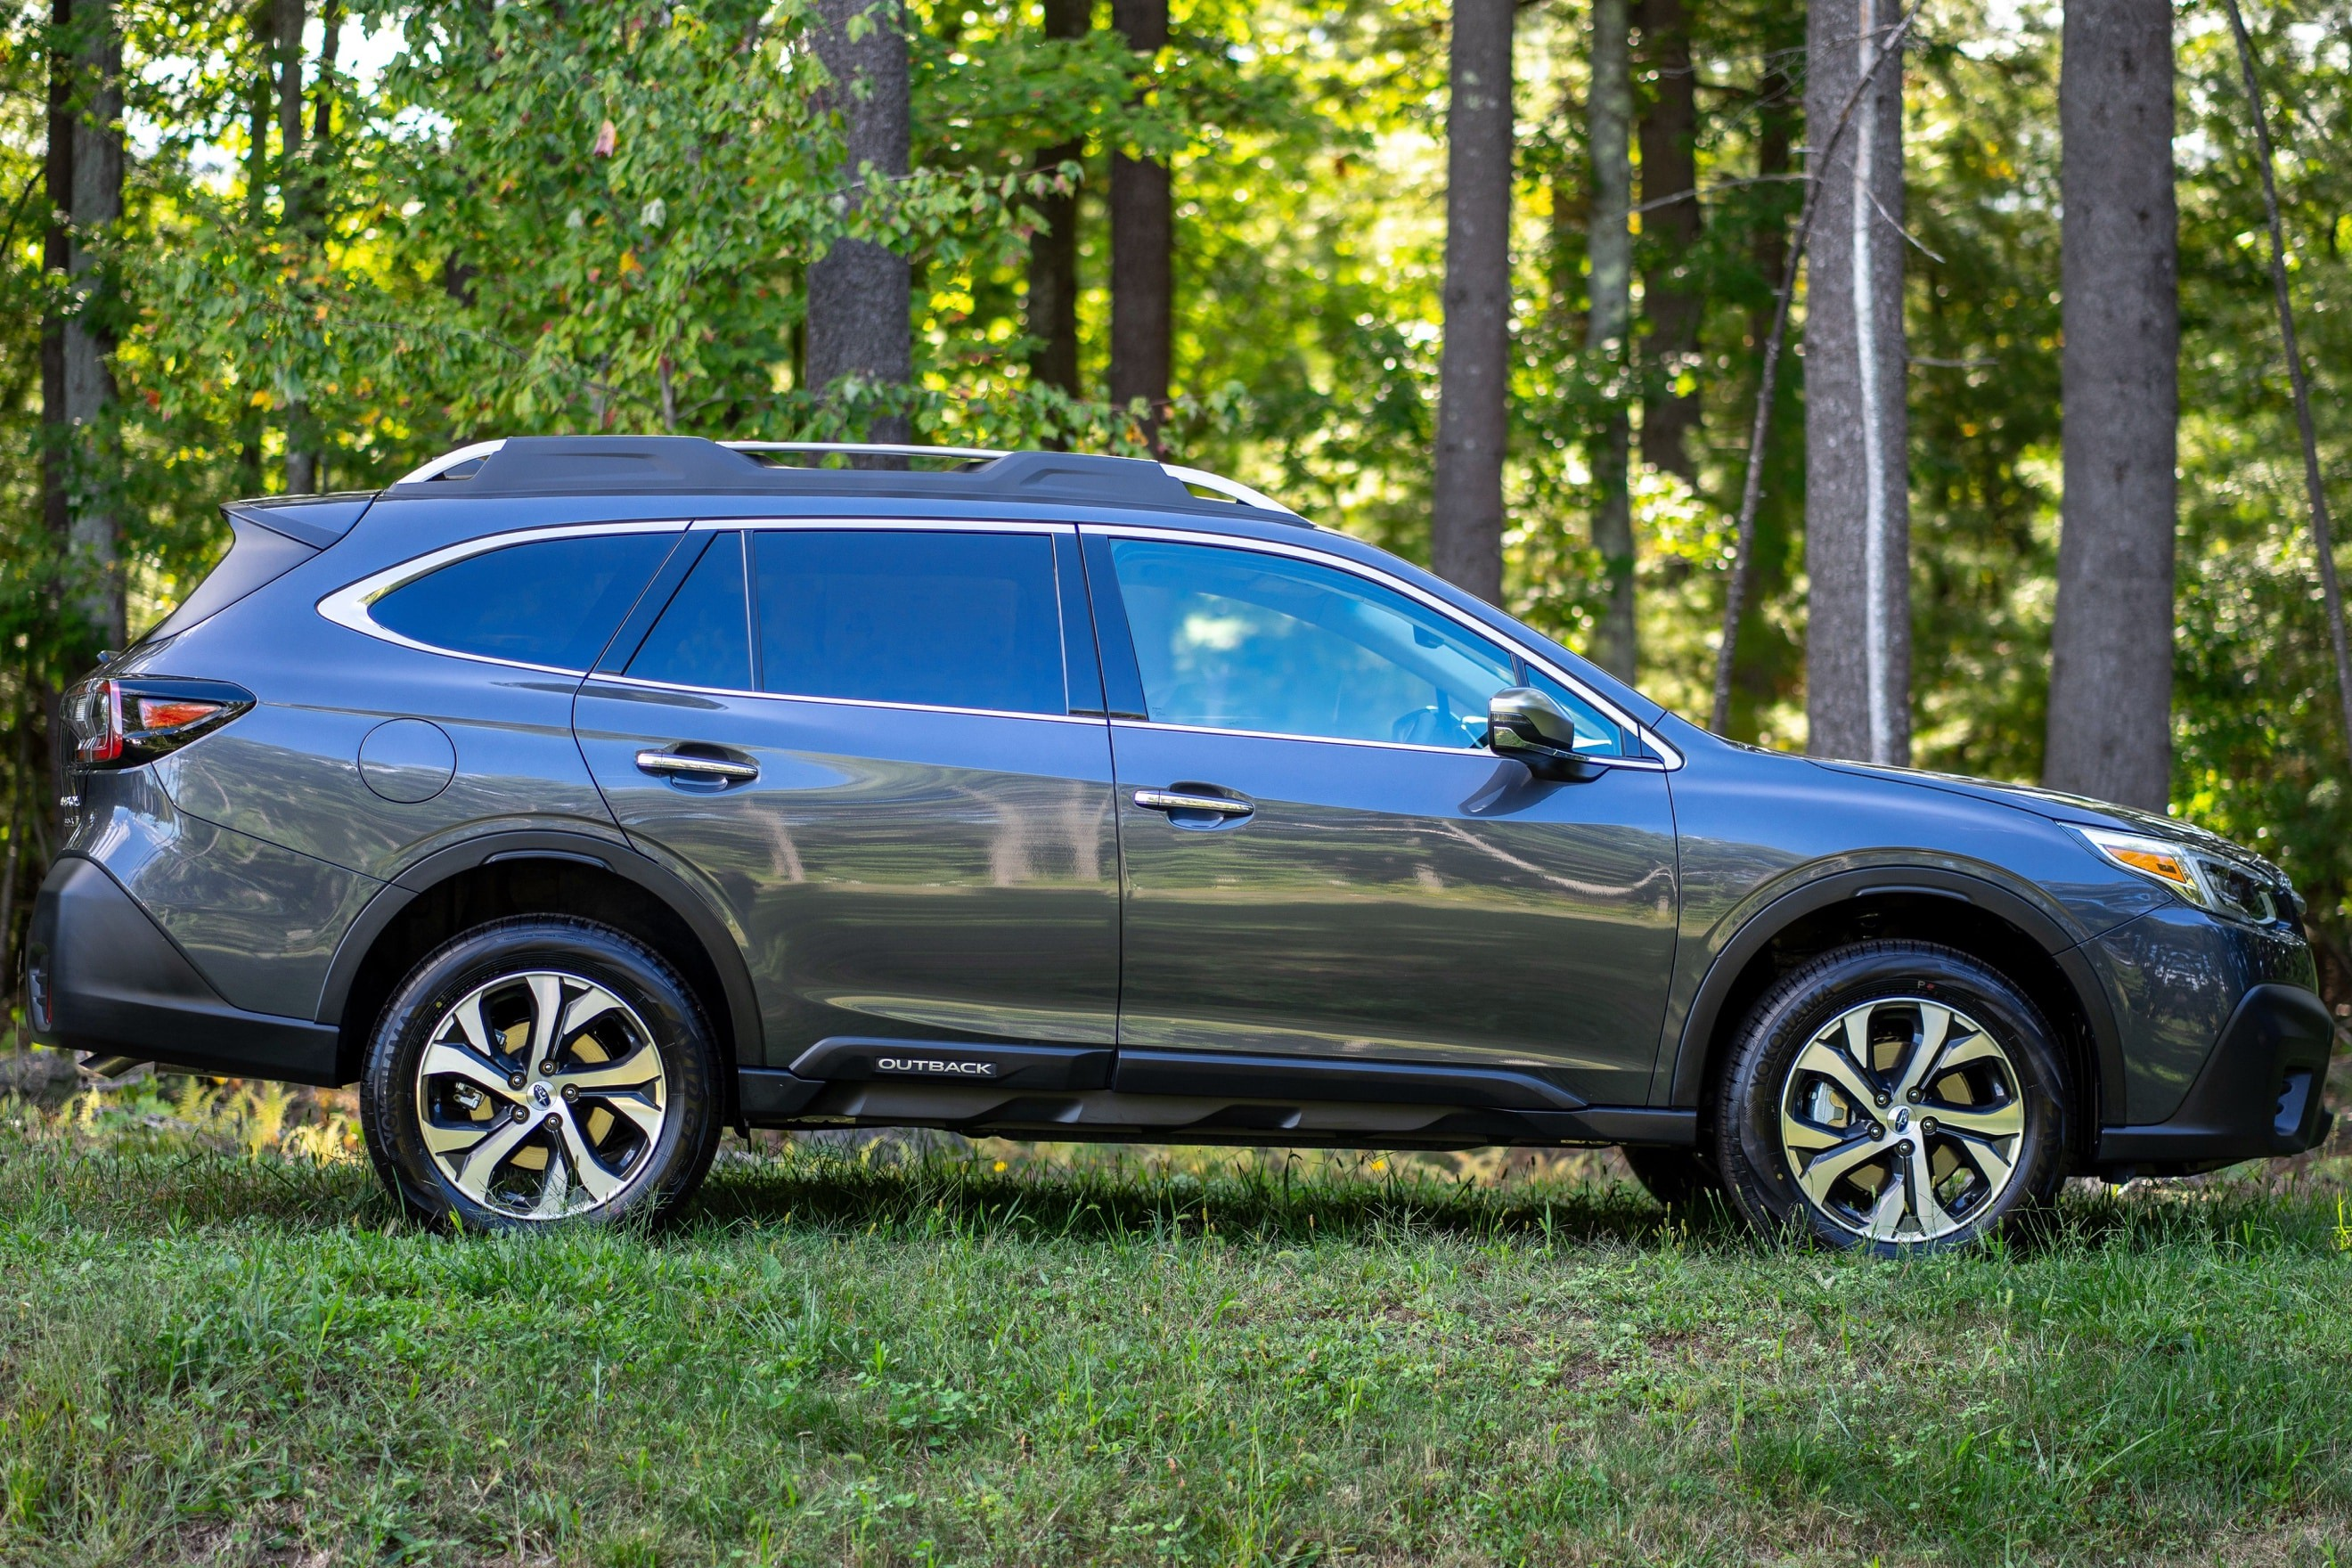 2021 subaru outback near baton rouge la is packed with standard safety tech by sarah erwin medium 2021 subaru outback near baton rouge la